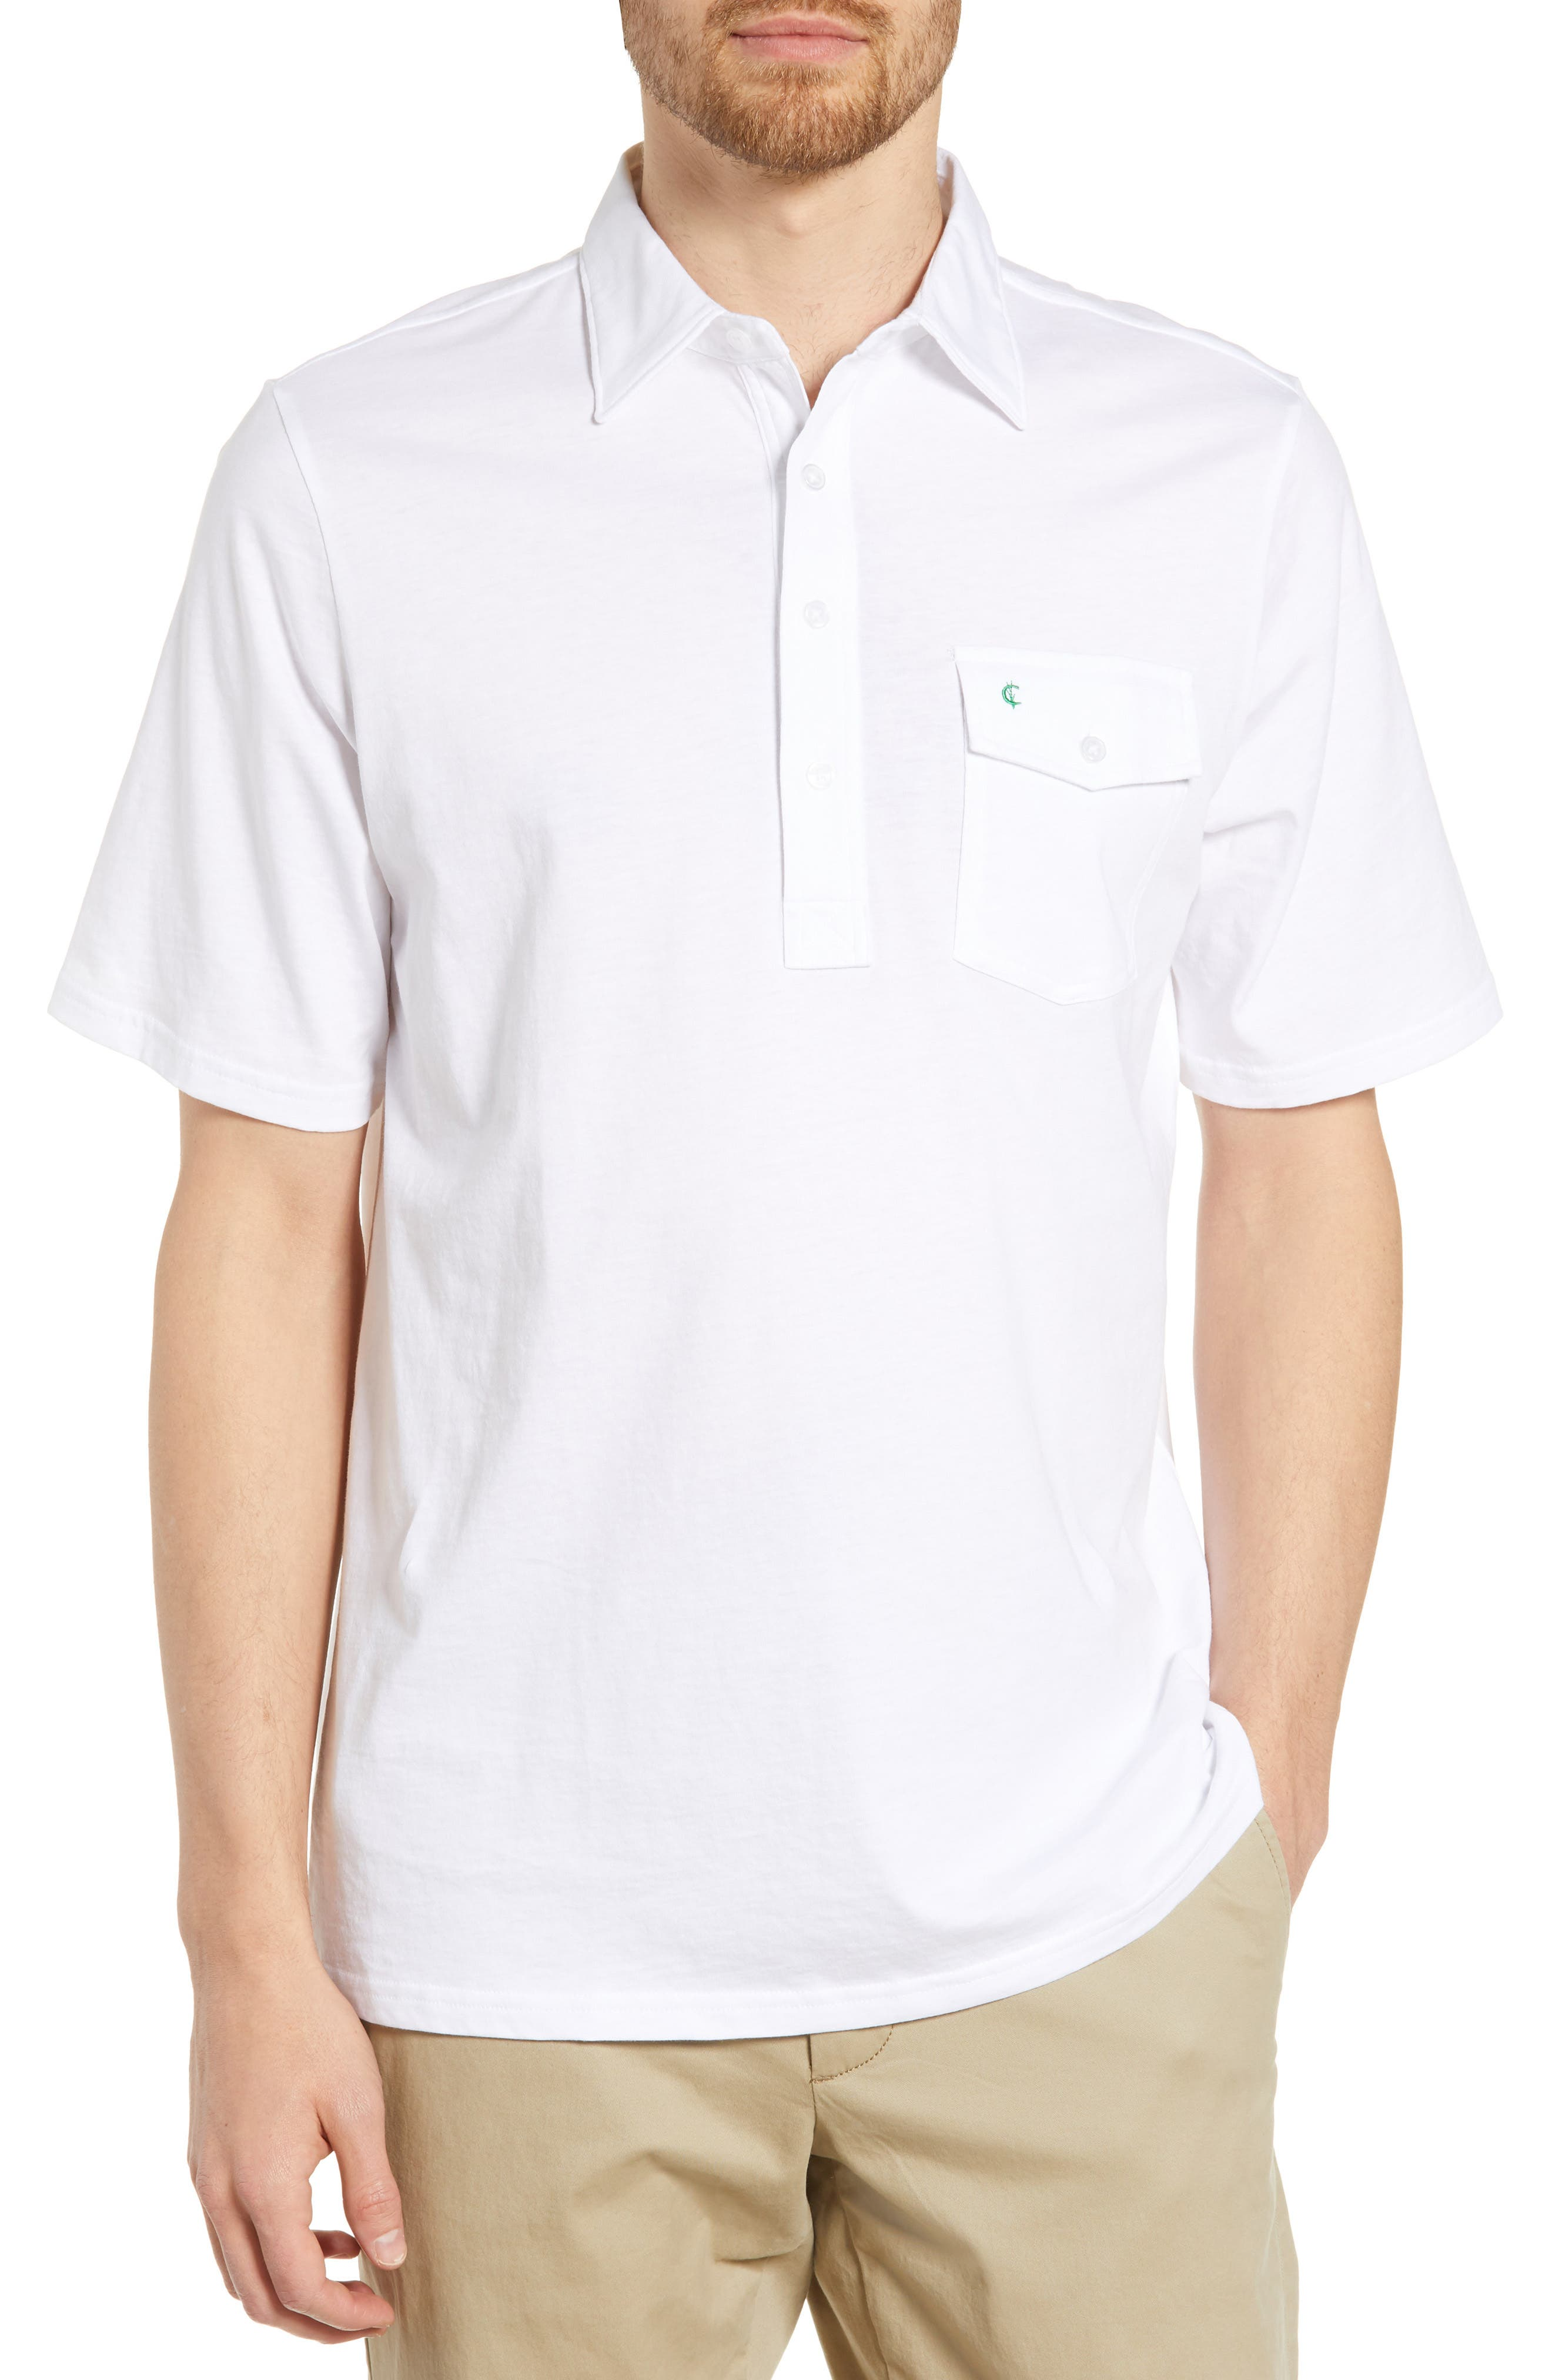 CRIQUET, Regular Fit Players Jersey Polo, Main thumbnail 1, color, WHITE